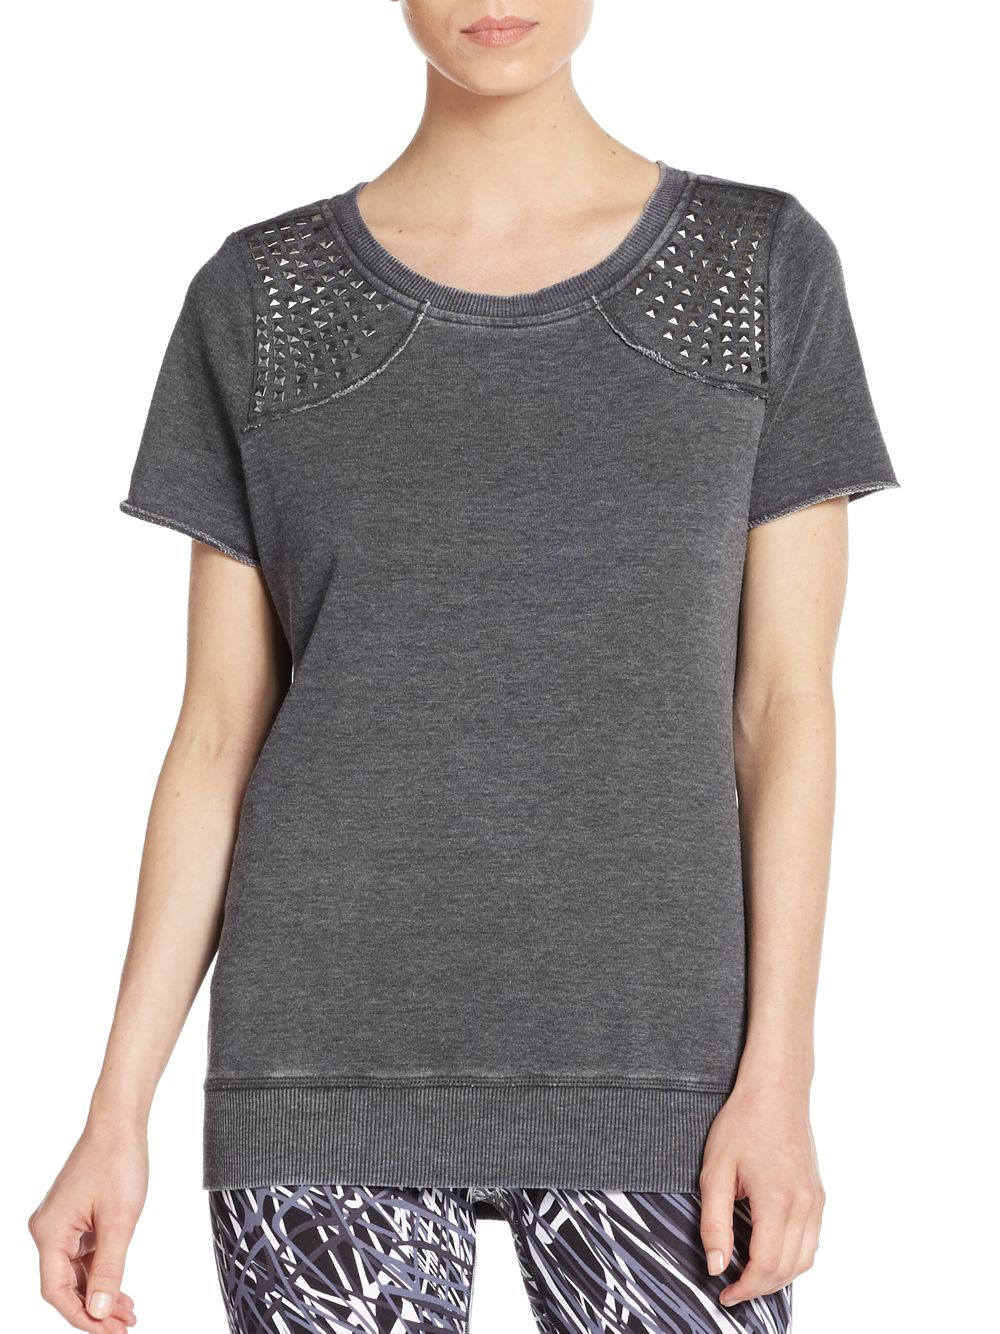 Marc new york stud accent short sleeve sweatshirt in gray for Thrilla in manila shirt under armour